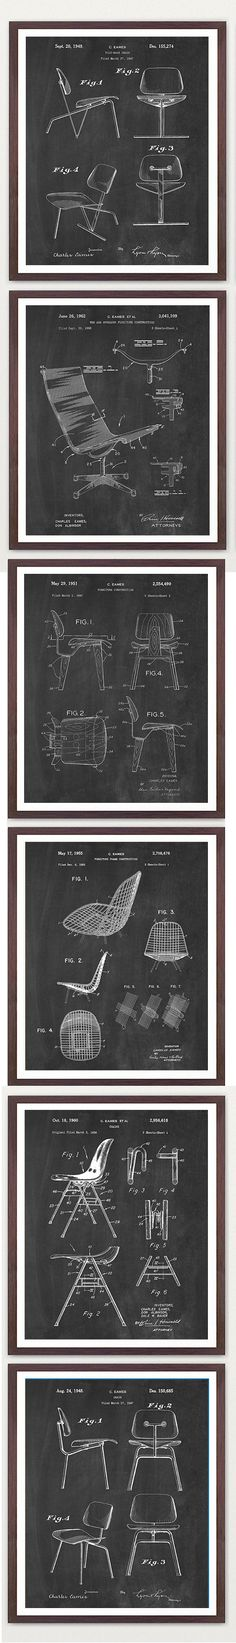 Eames chair patents, U. Chair Design, Furniture Design, Cool Office Desk, Interior Design History, Contemporary Couches, Presentation Layout, Charles & Ray Eames, Swinging Chair, Sketch Design